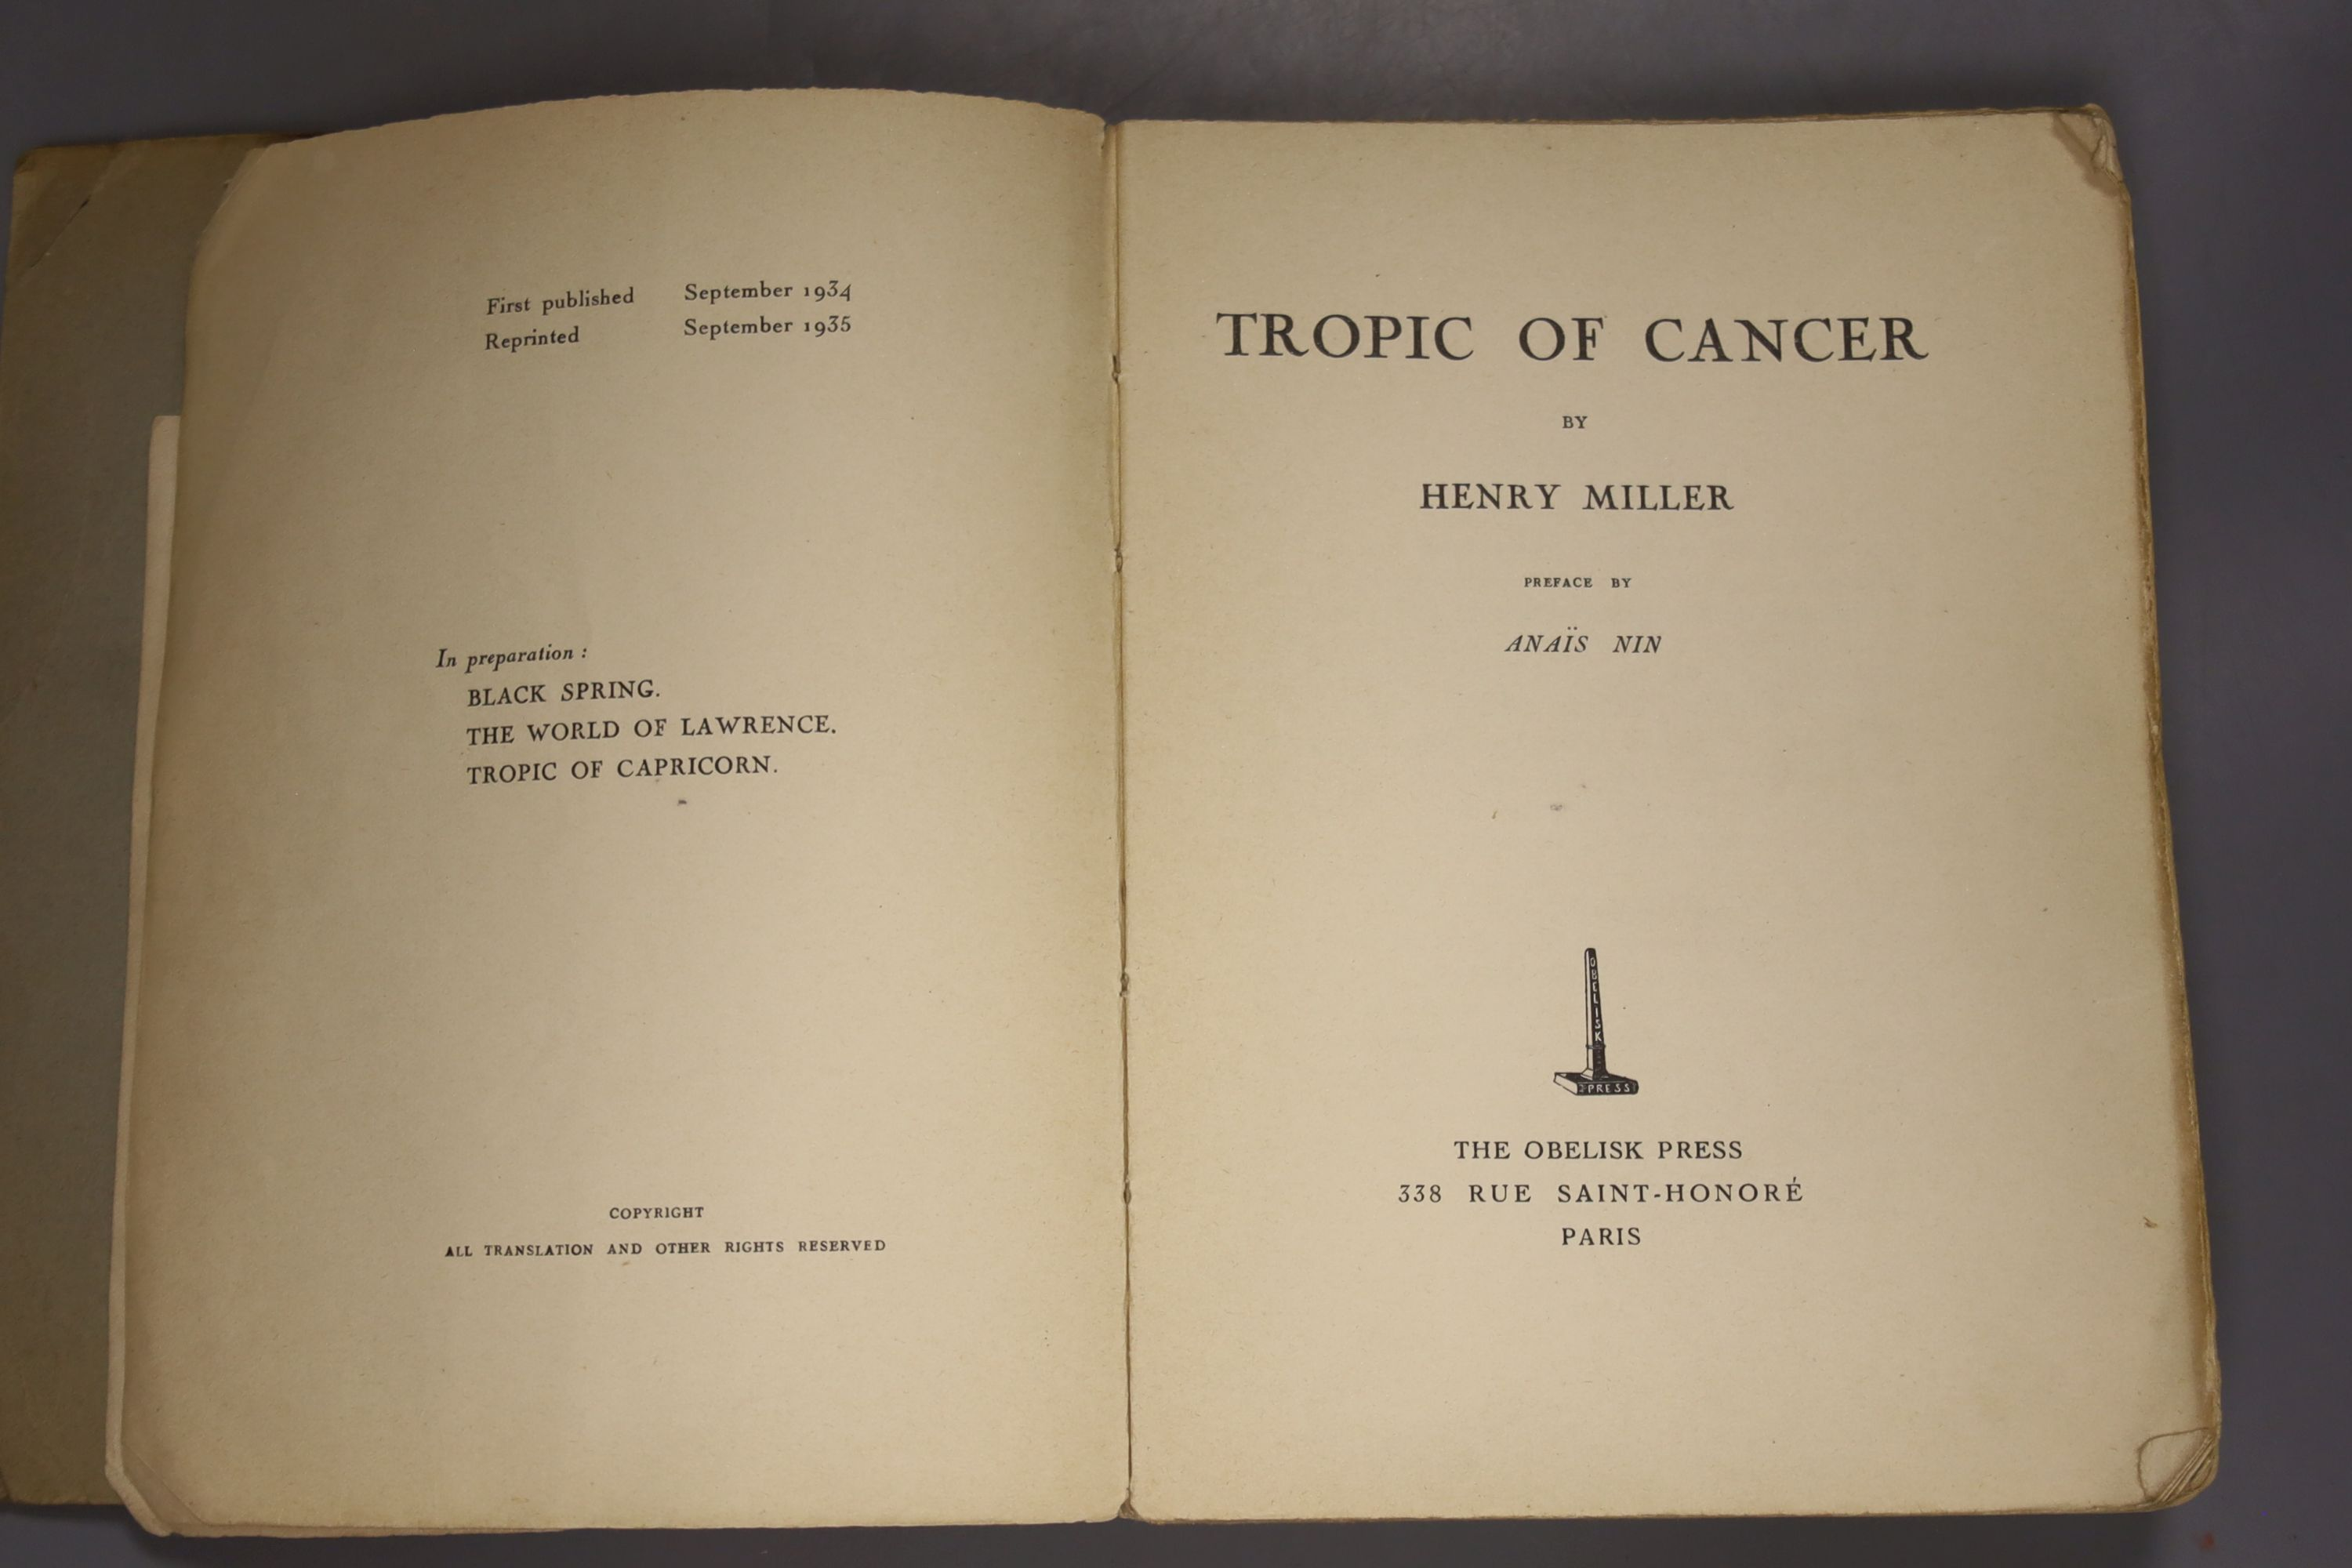 Miller, Henry – The Tropic of Cancer. Preface by Anais Nin, grey wrappers, Paris: The Obelisk Press, - Image 2 of 3